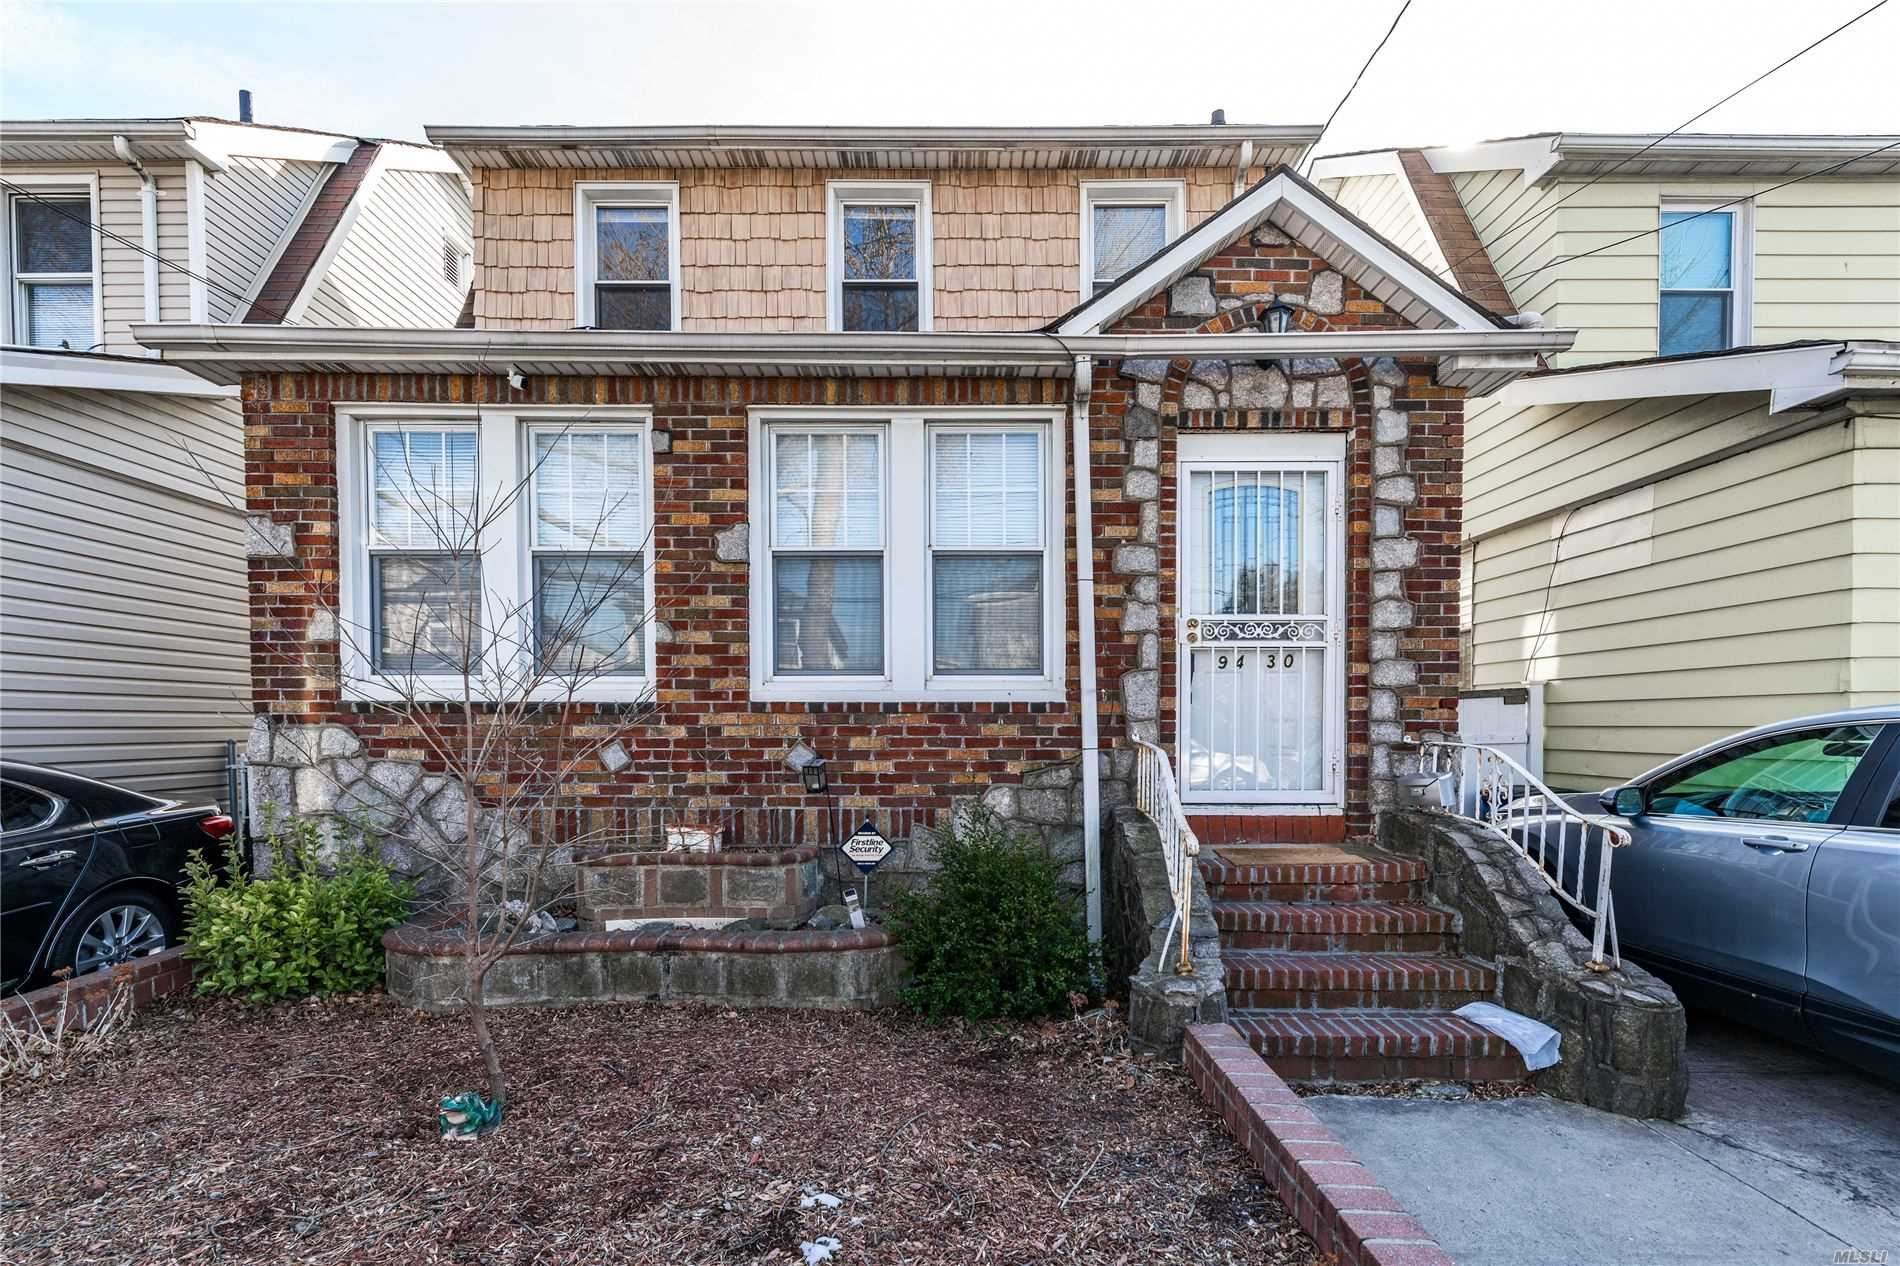 94-30 109th Avenue #2, Ozone Park, NY 11417 - MLS#: 3194968